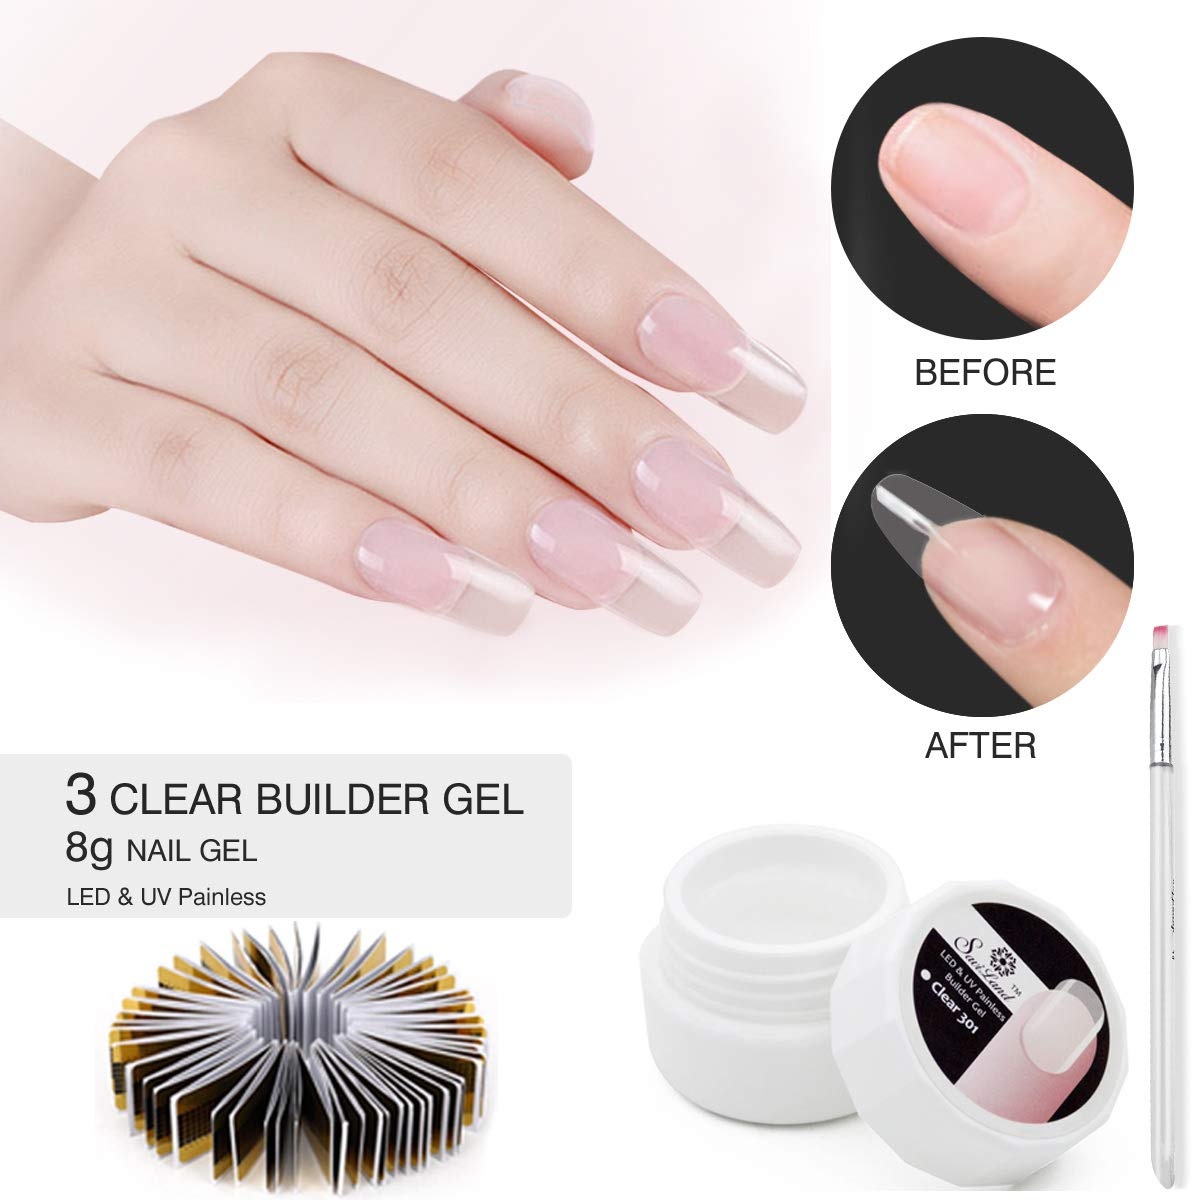 3 Clear UV Builder Gel Set, Saviland Nail Extension Gel Nail Art Manicure Set with Nail Form stickers Brush(8g/Box) by Saviland